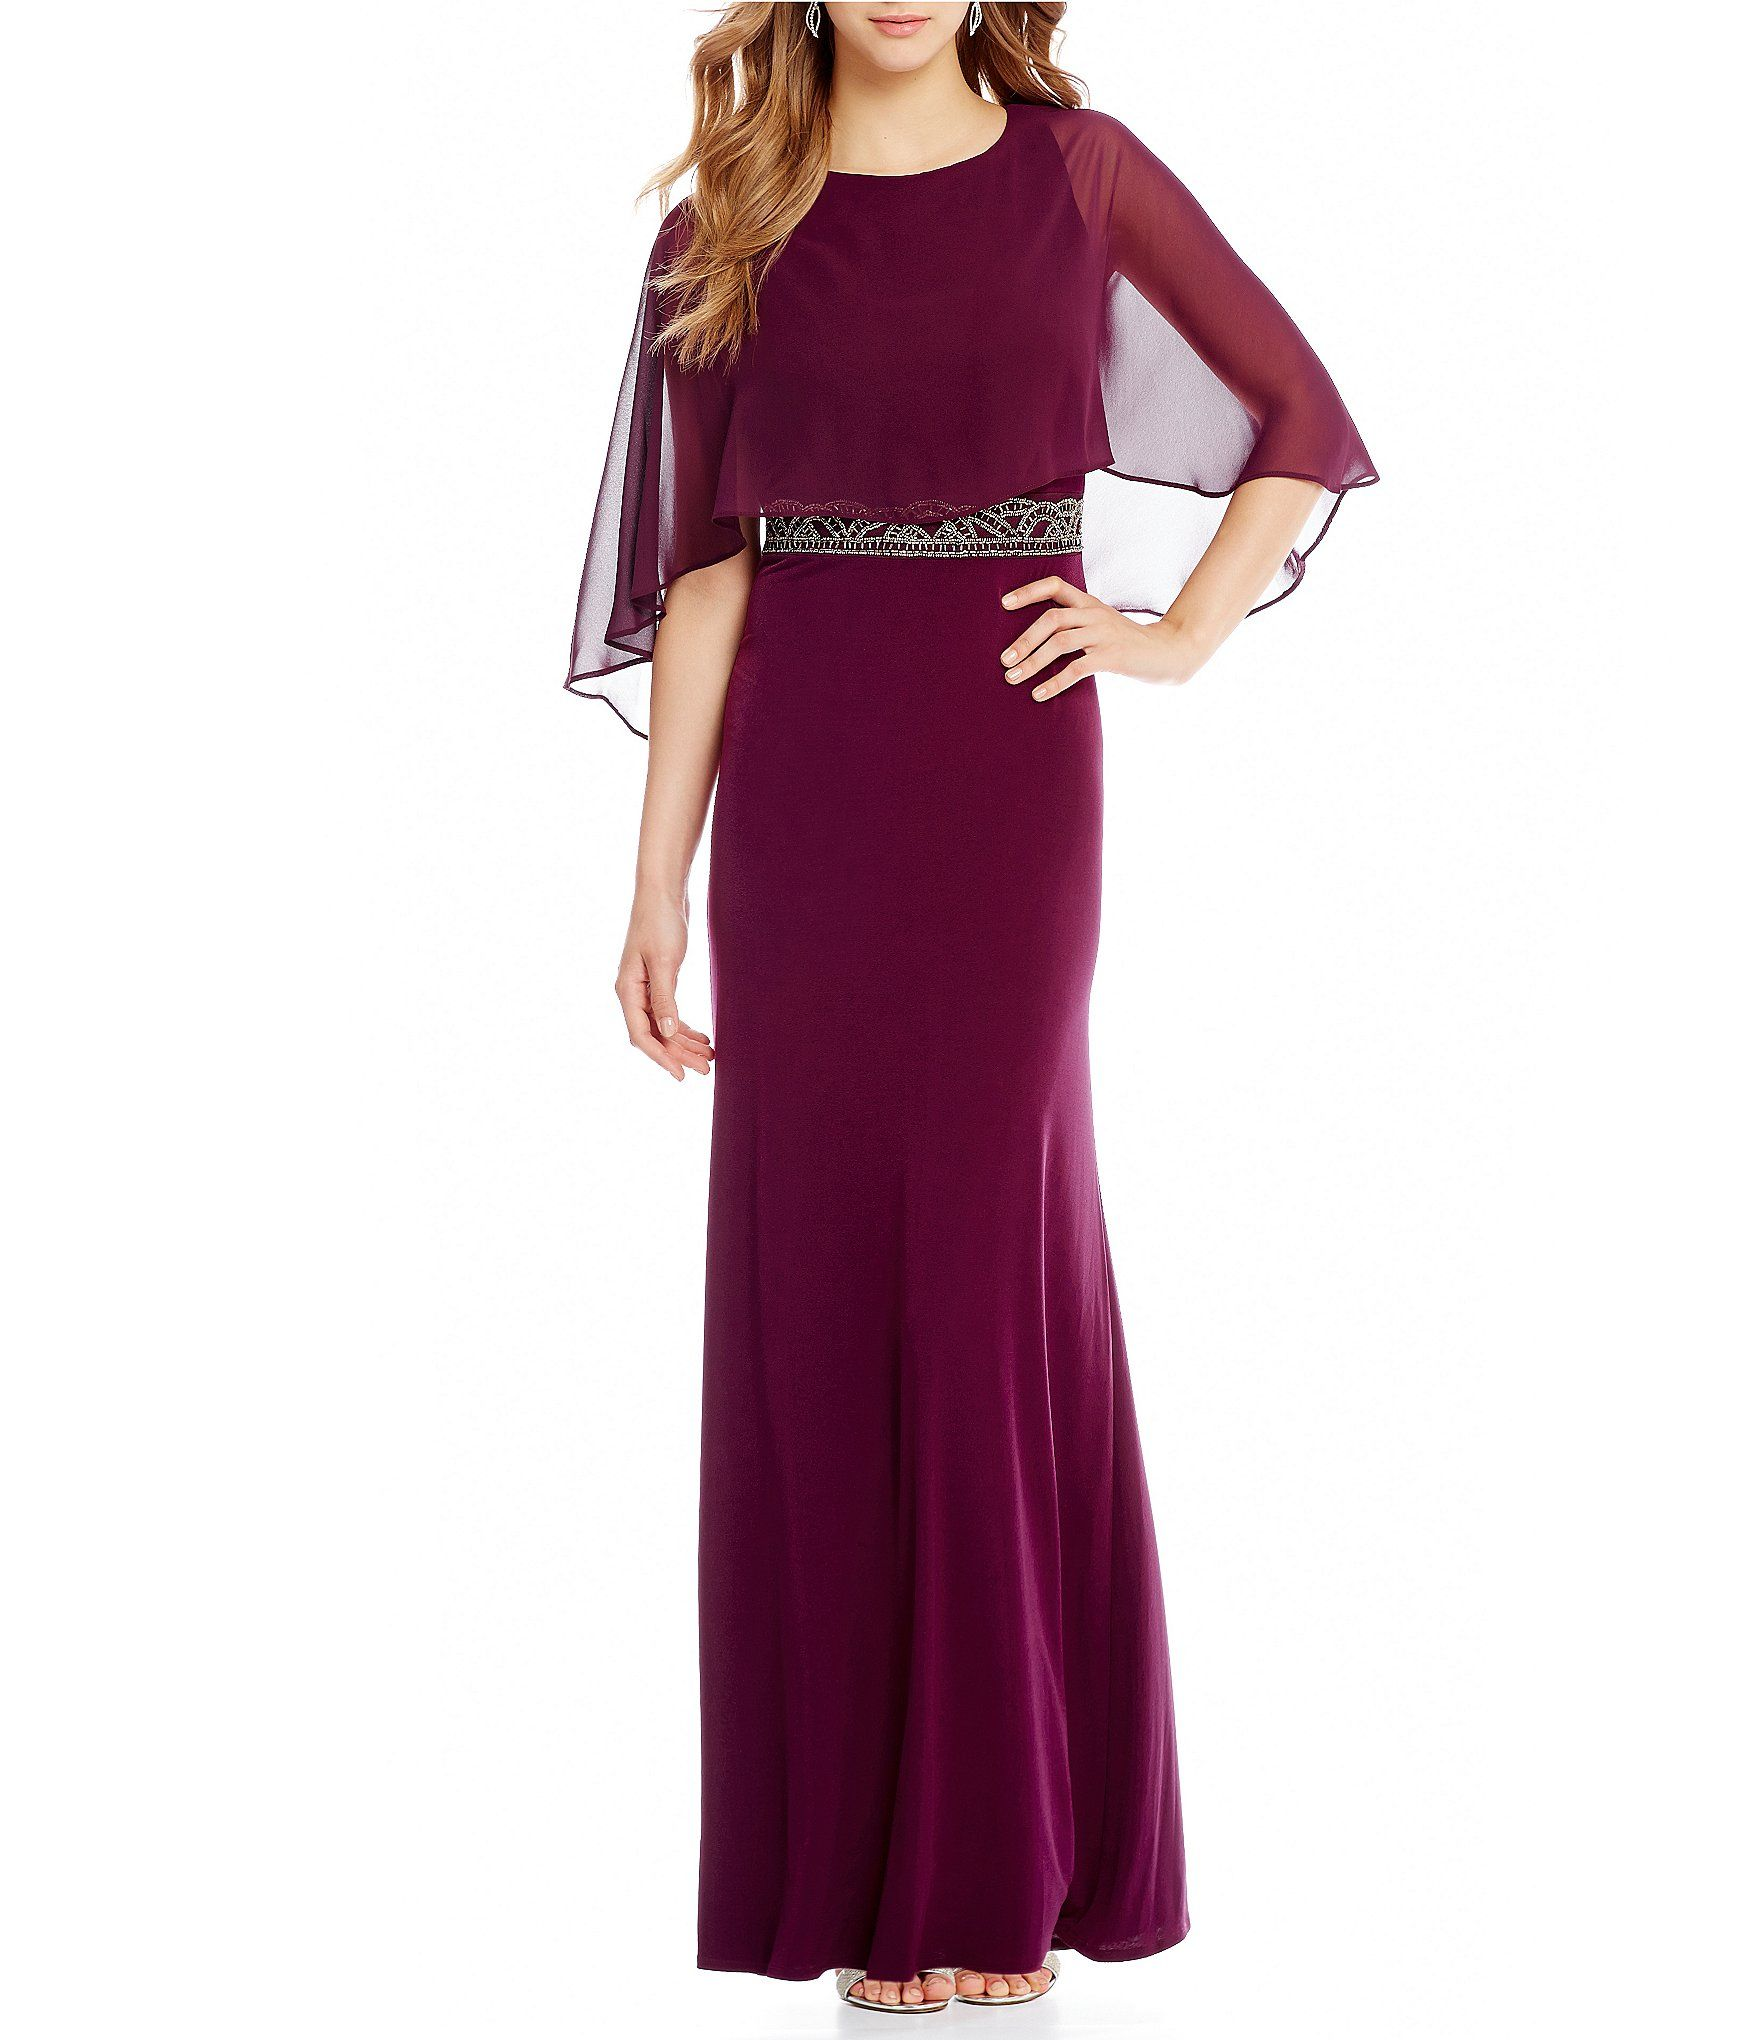 Sangria Chiffon Cape Gown #Dillards | Bridal party | Pinterest ...